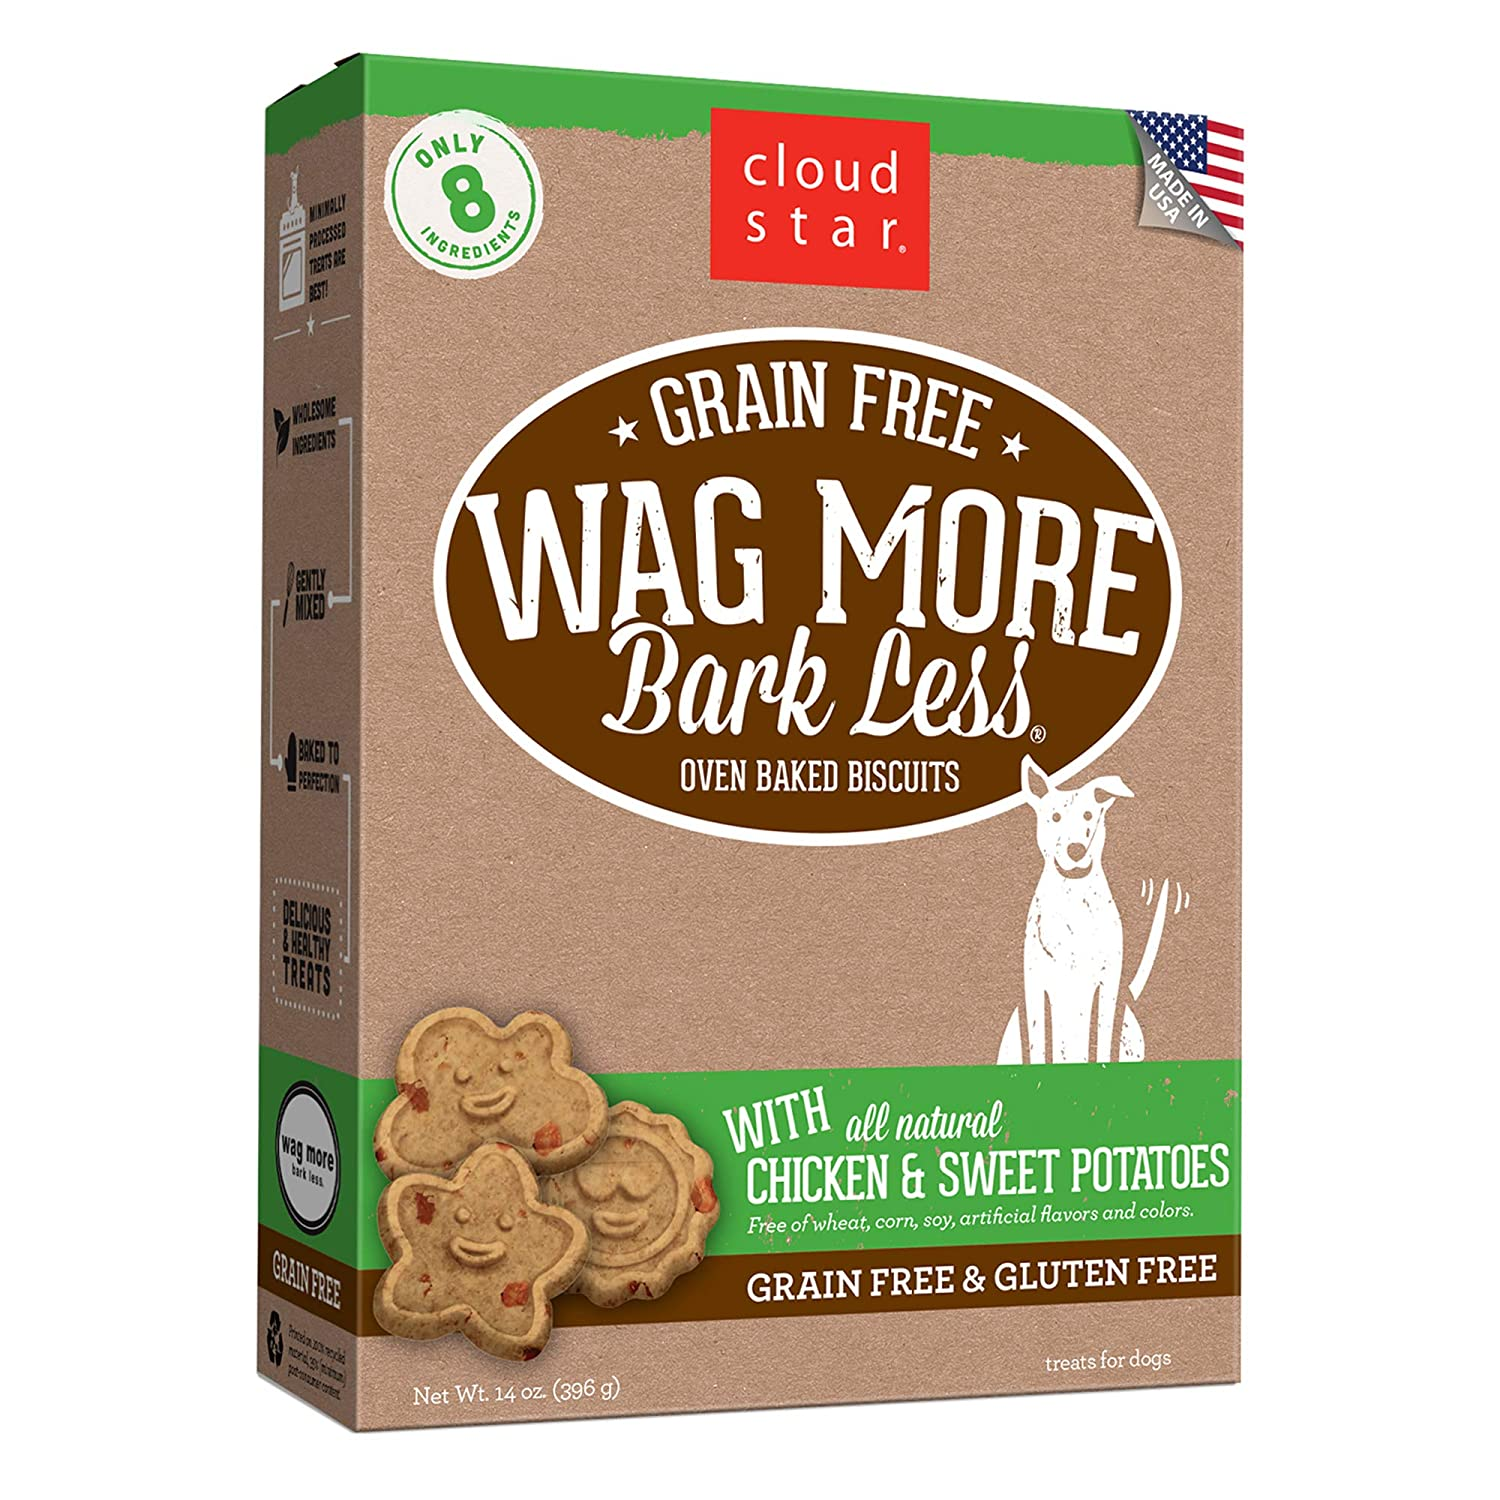 Cloud Star Wag More Bark Less Grain Free Oven Baked Treats